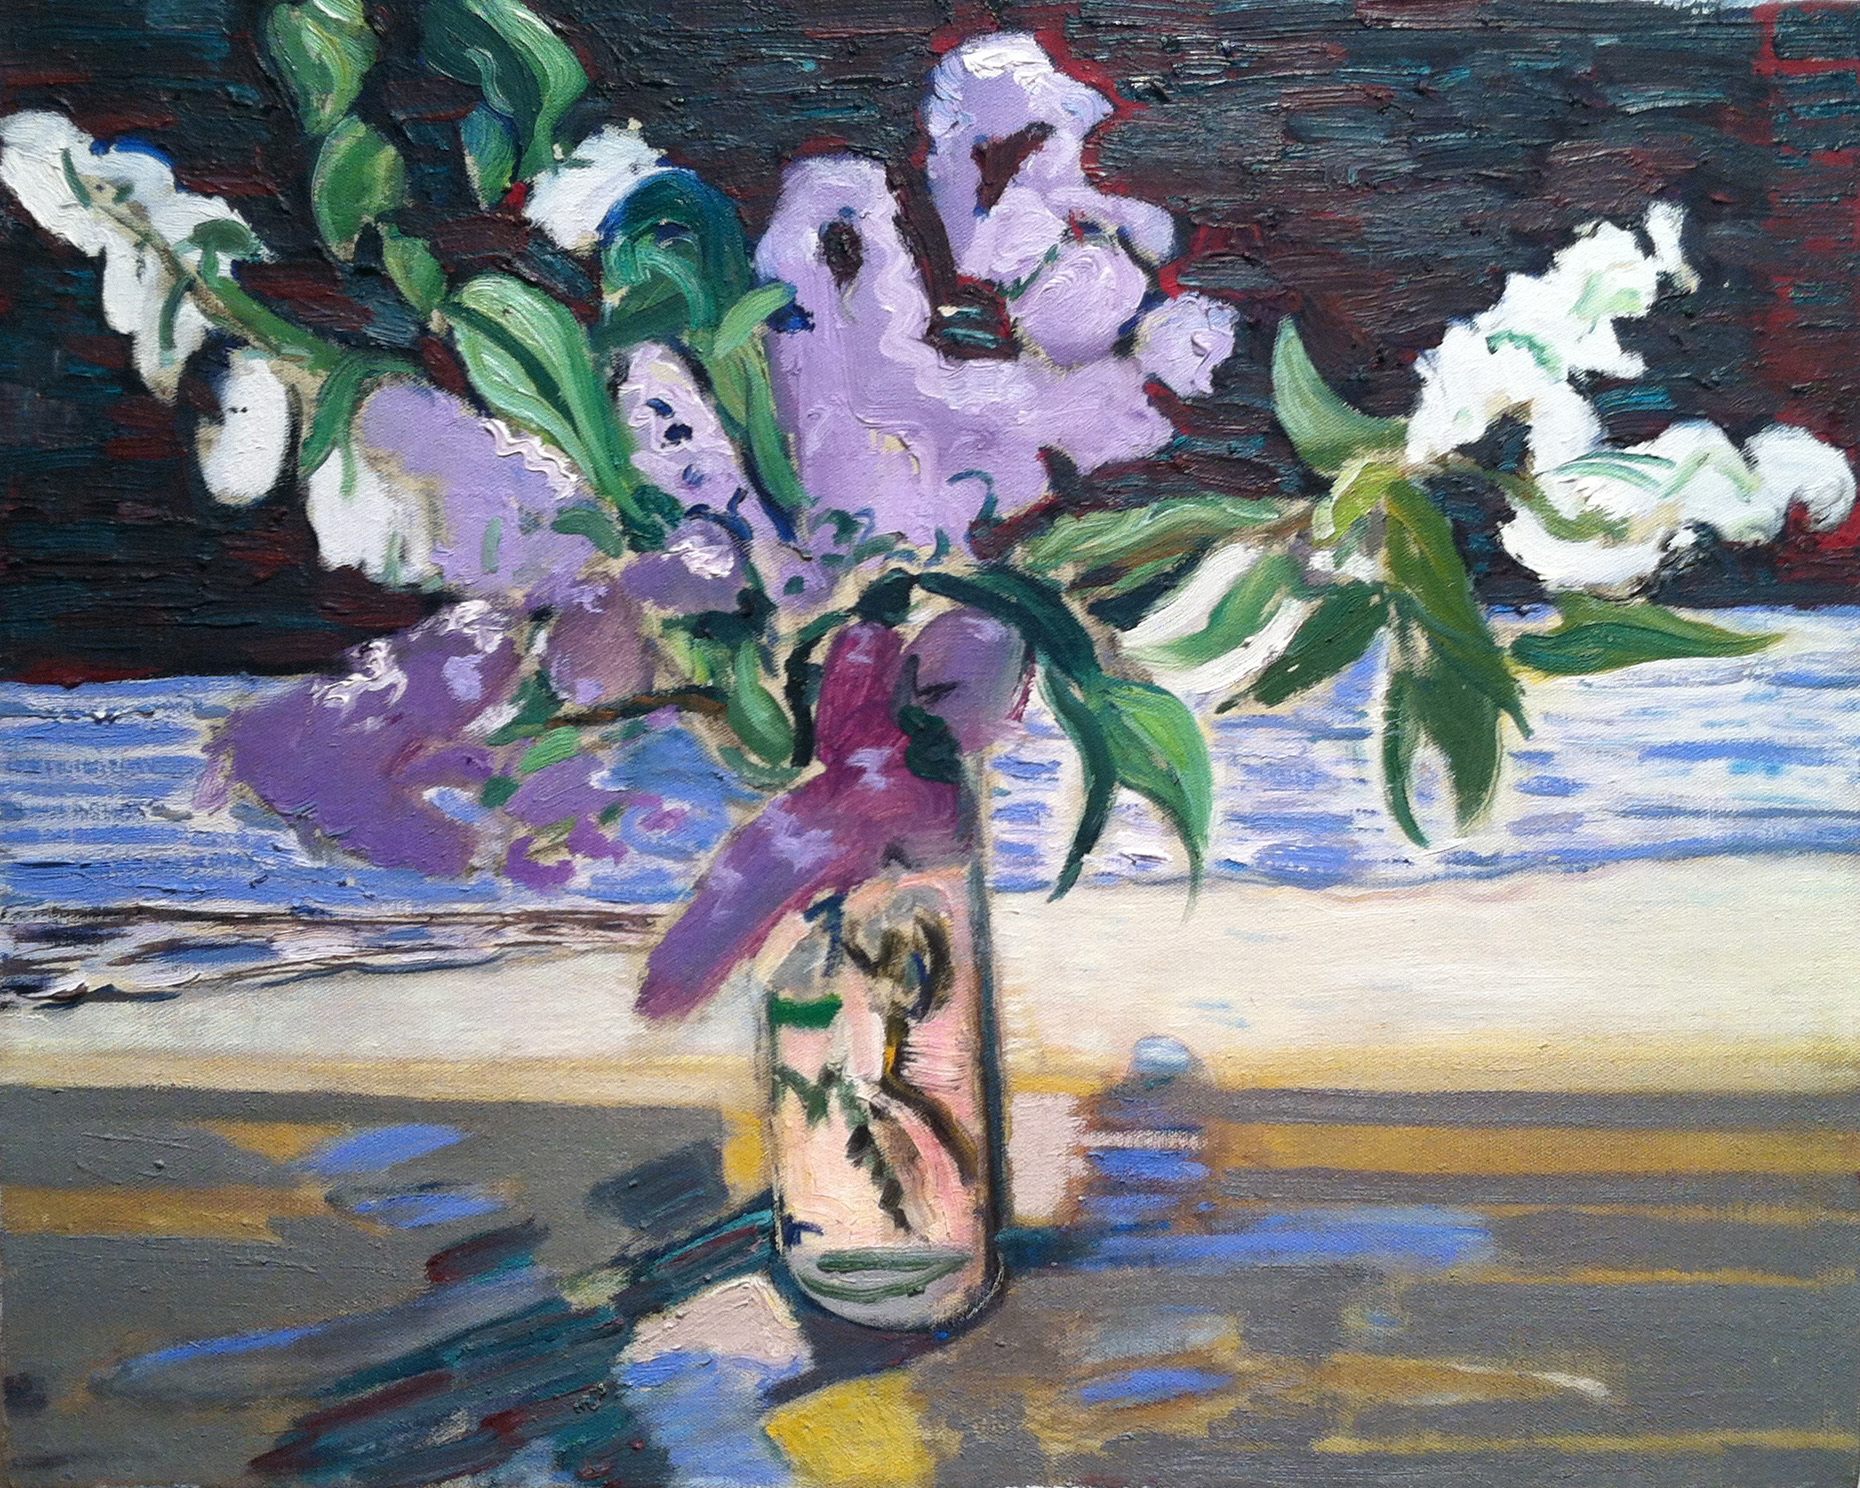 Lavendar Flowers, 1994 oil on canvas, 16 x 20 inches